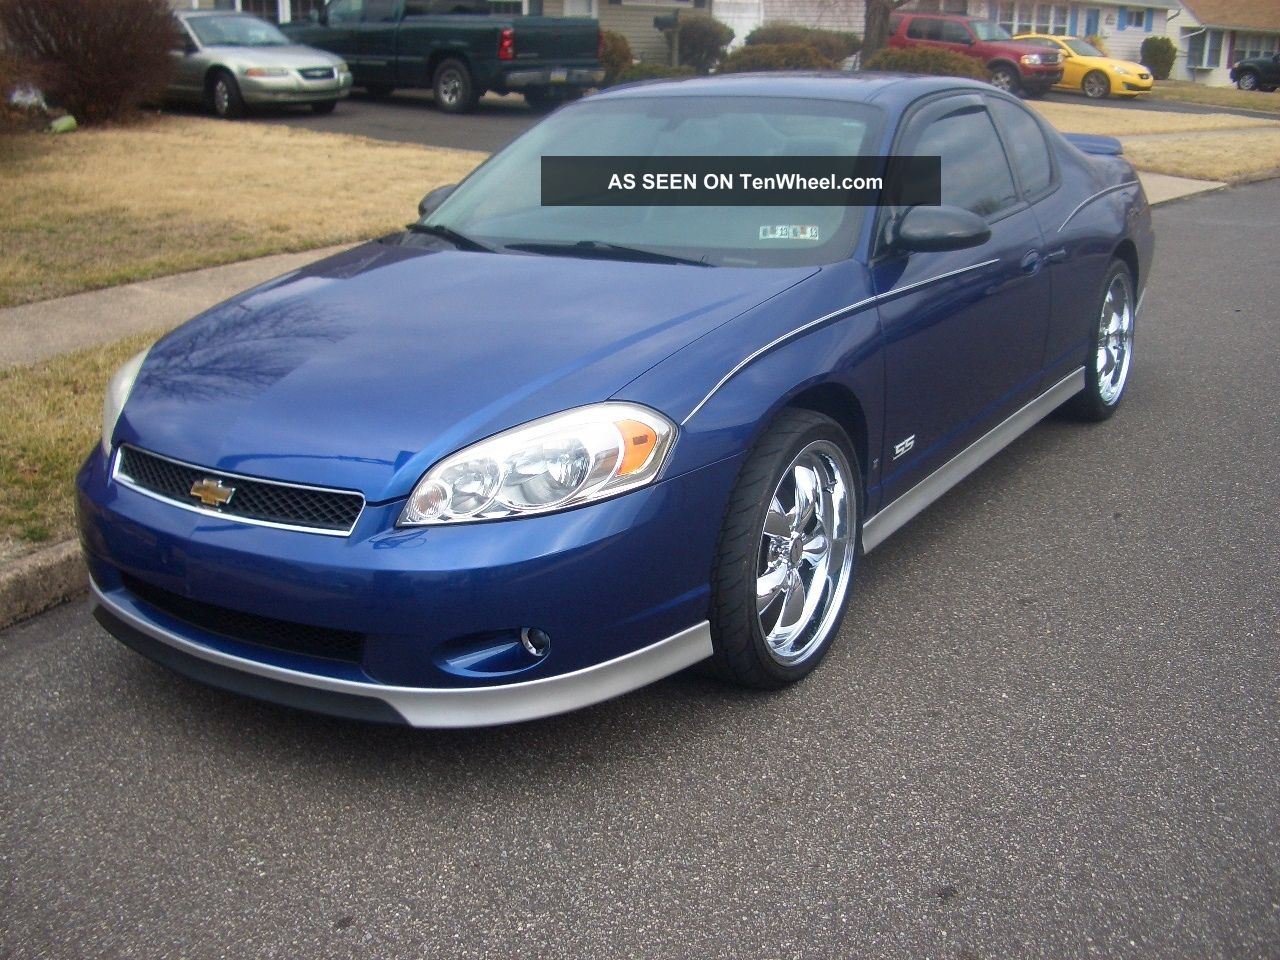 2006 chevrolet monte carlo ss coupe 2 door 5 3l. Black Bedroom Furniture Sets. Home Design Ideas